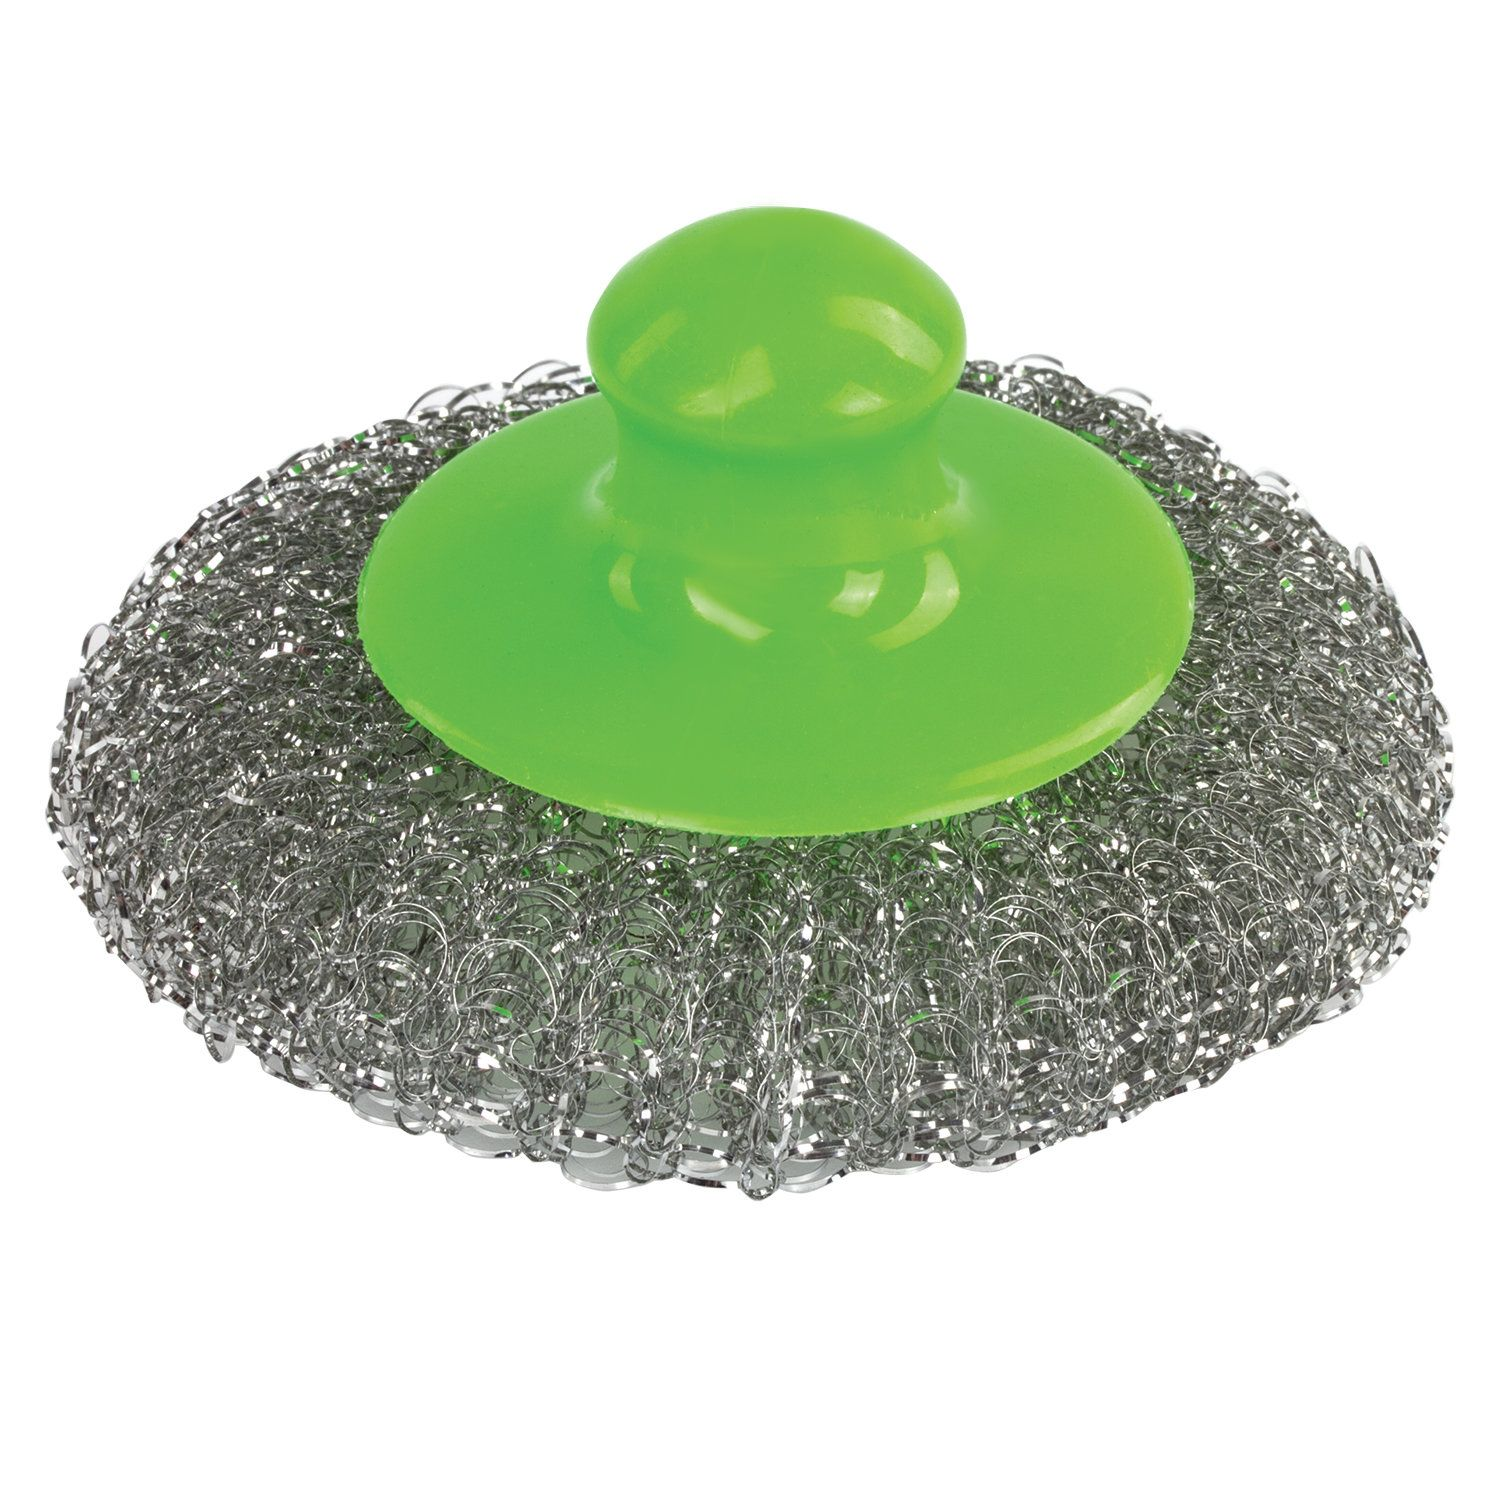 LIME / Sponge (washcloth) for dishes, metal plastic handle, with a SPARE NOZZLE, 20 g